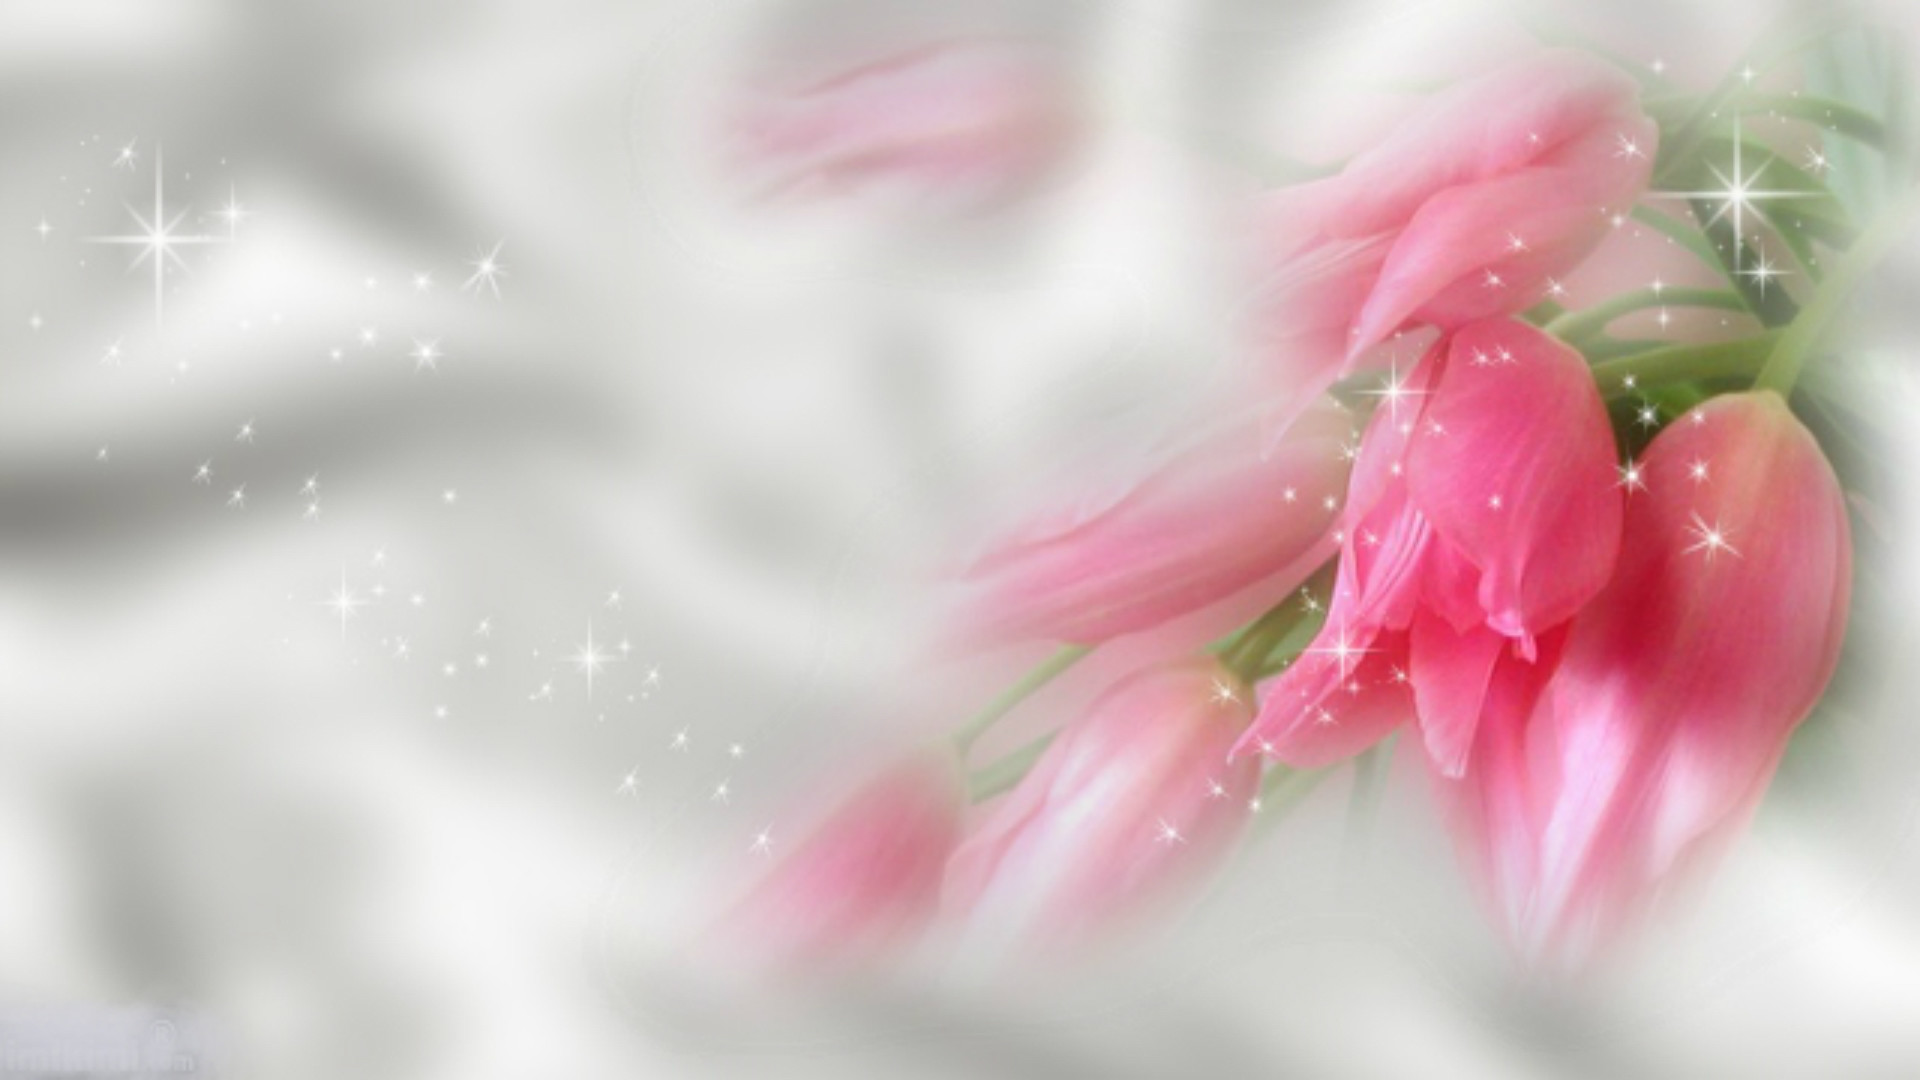 hd wallpaper pink flowers (72+ images)